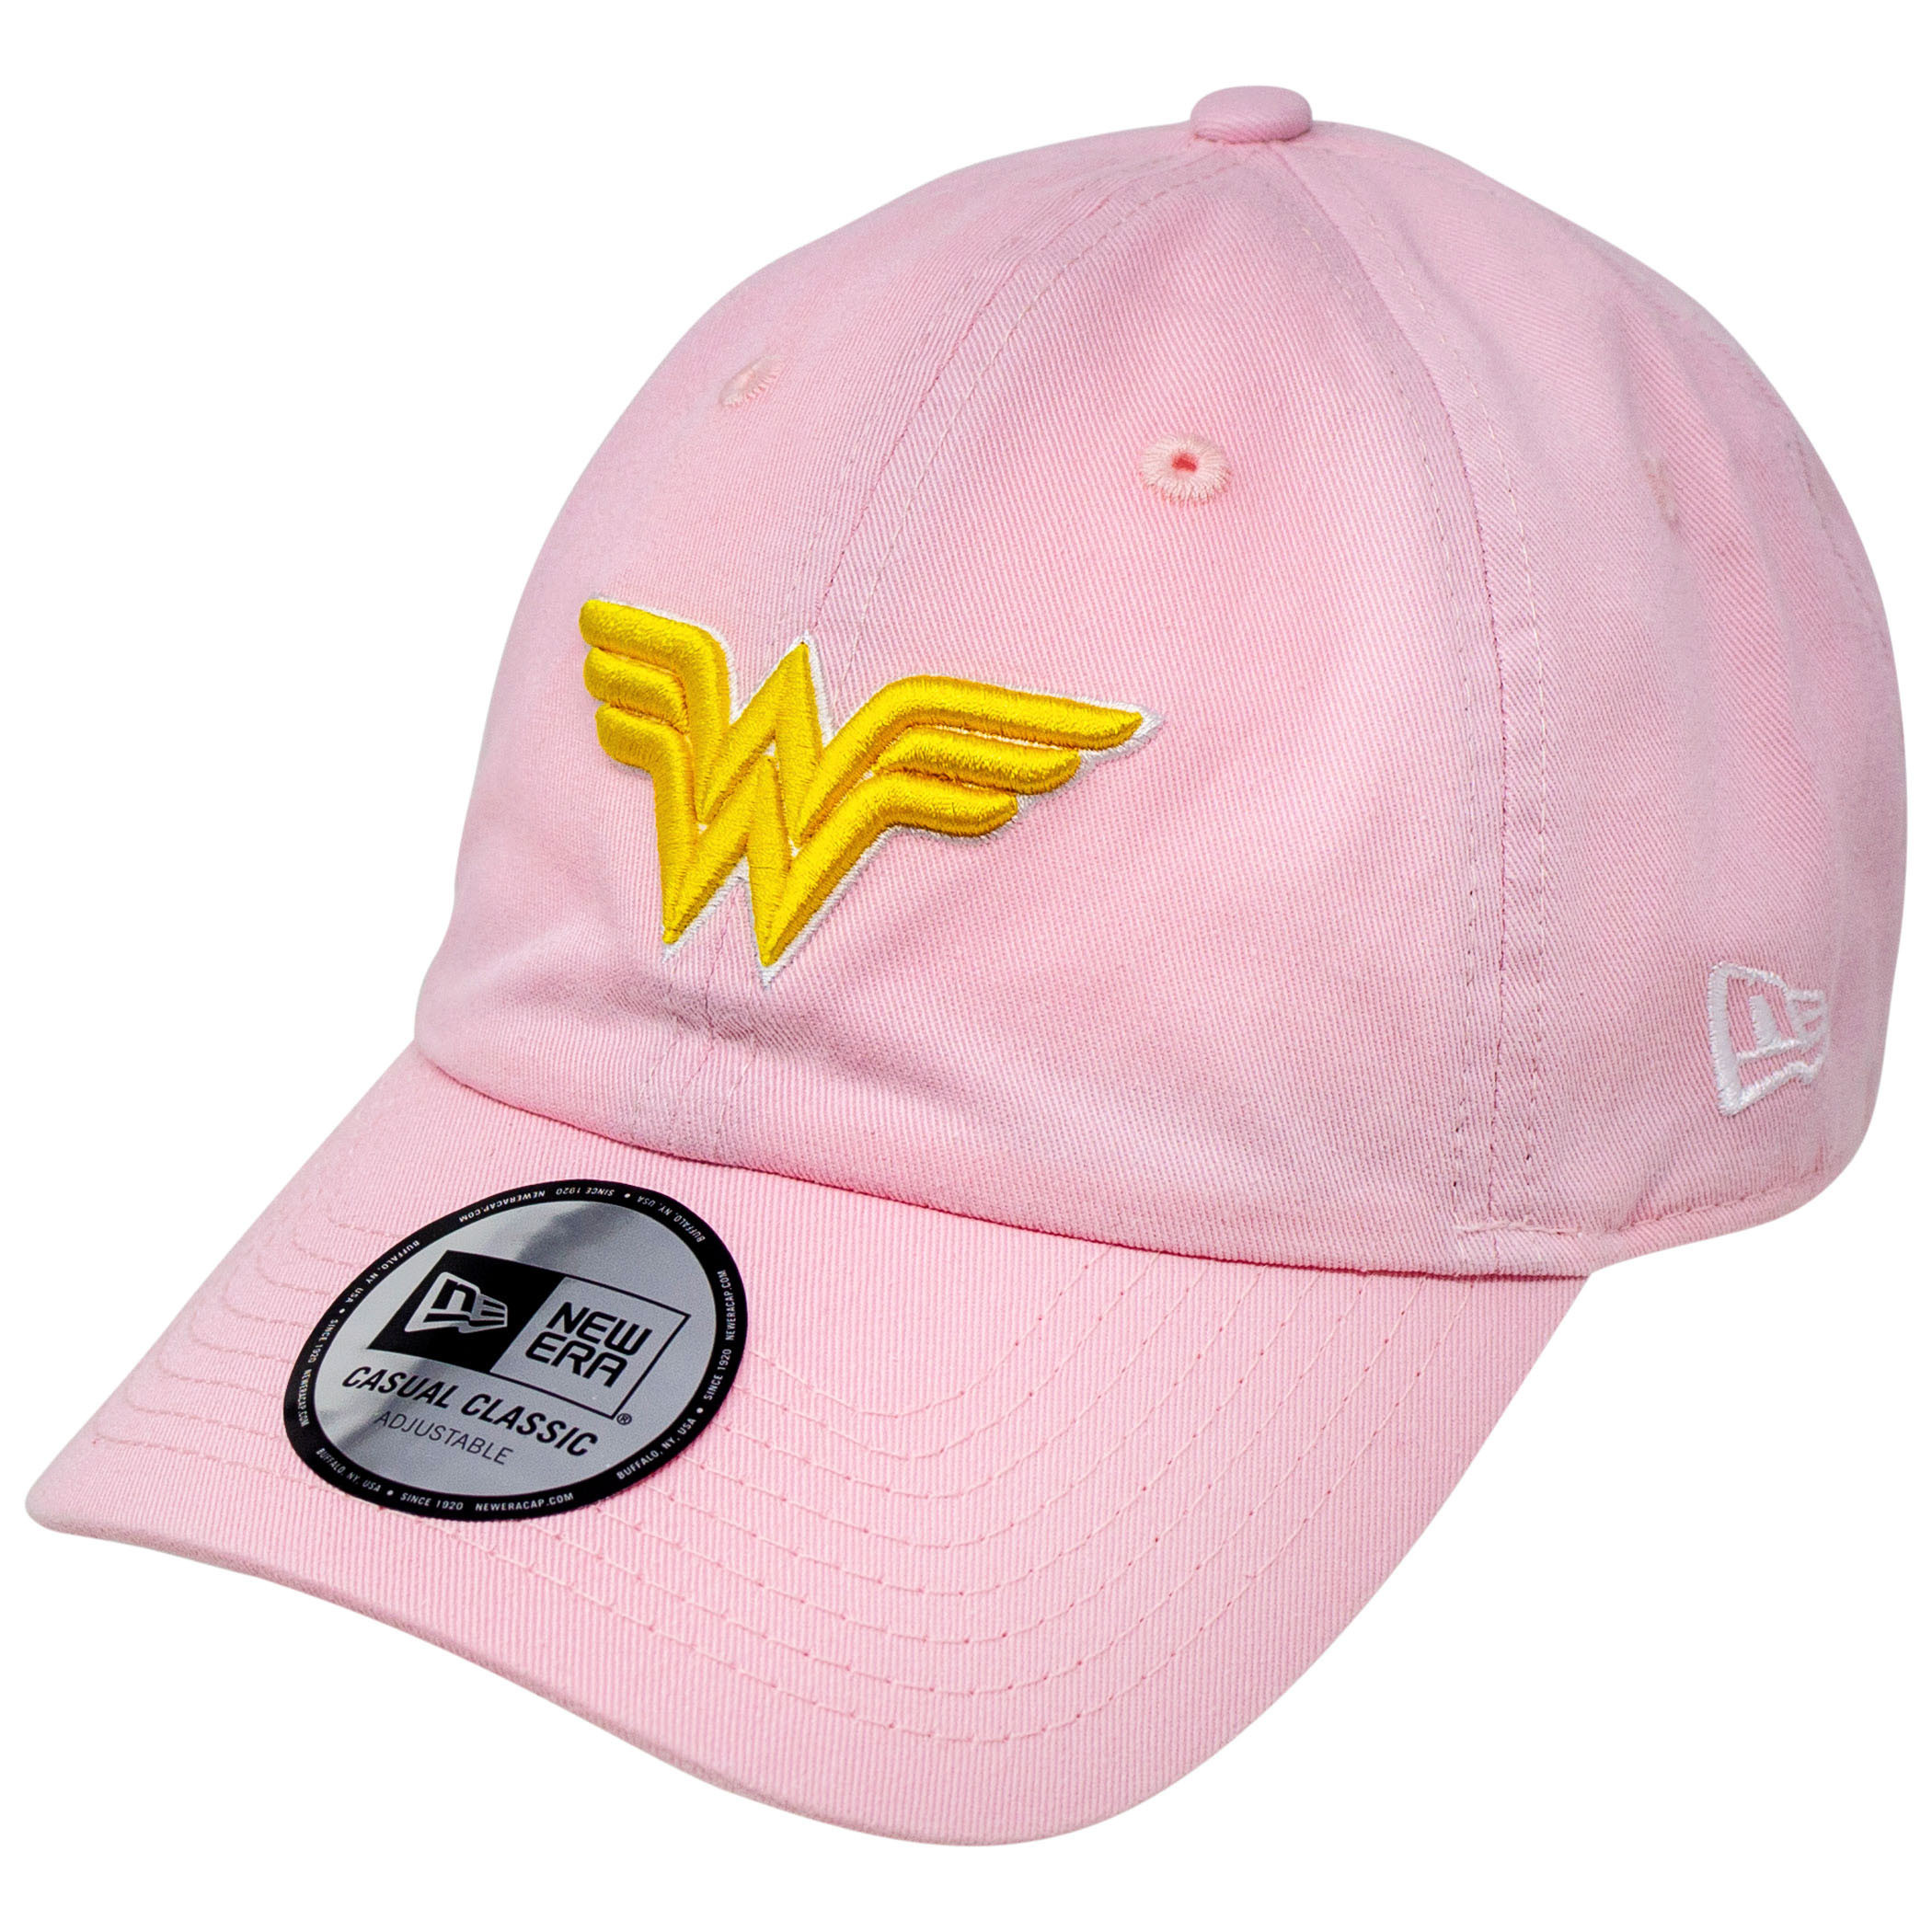 Wonder Woman Symbol New Era Casual Classic Adjustable Hat